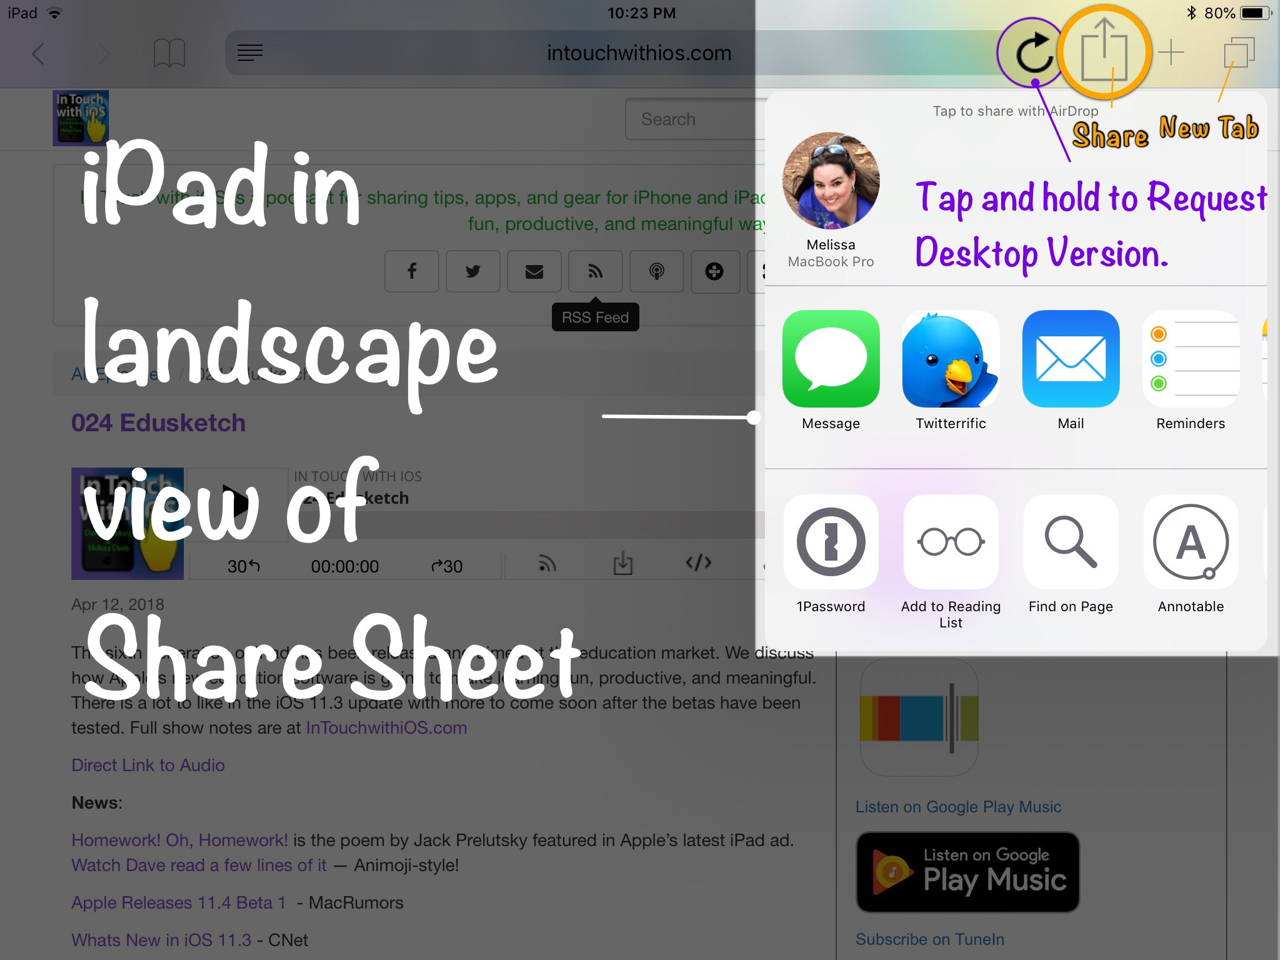 share sheet in iPad landscape view